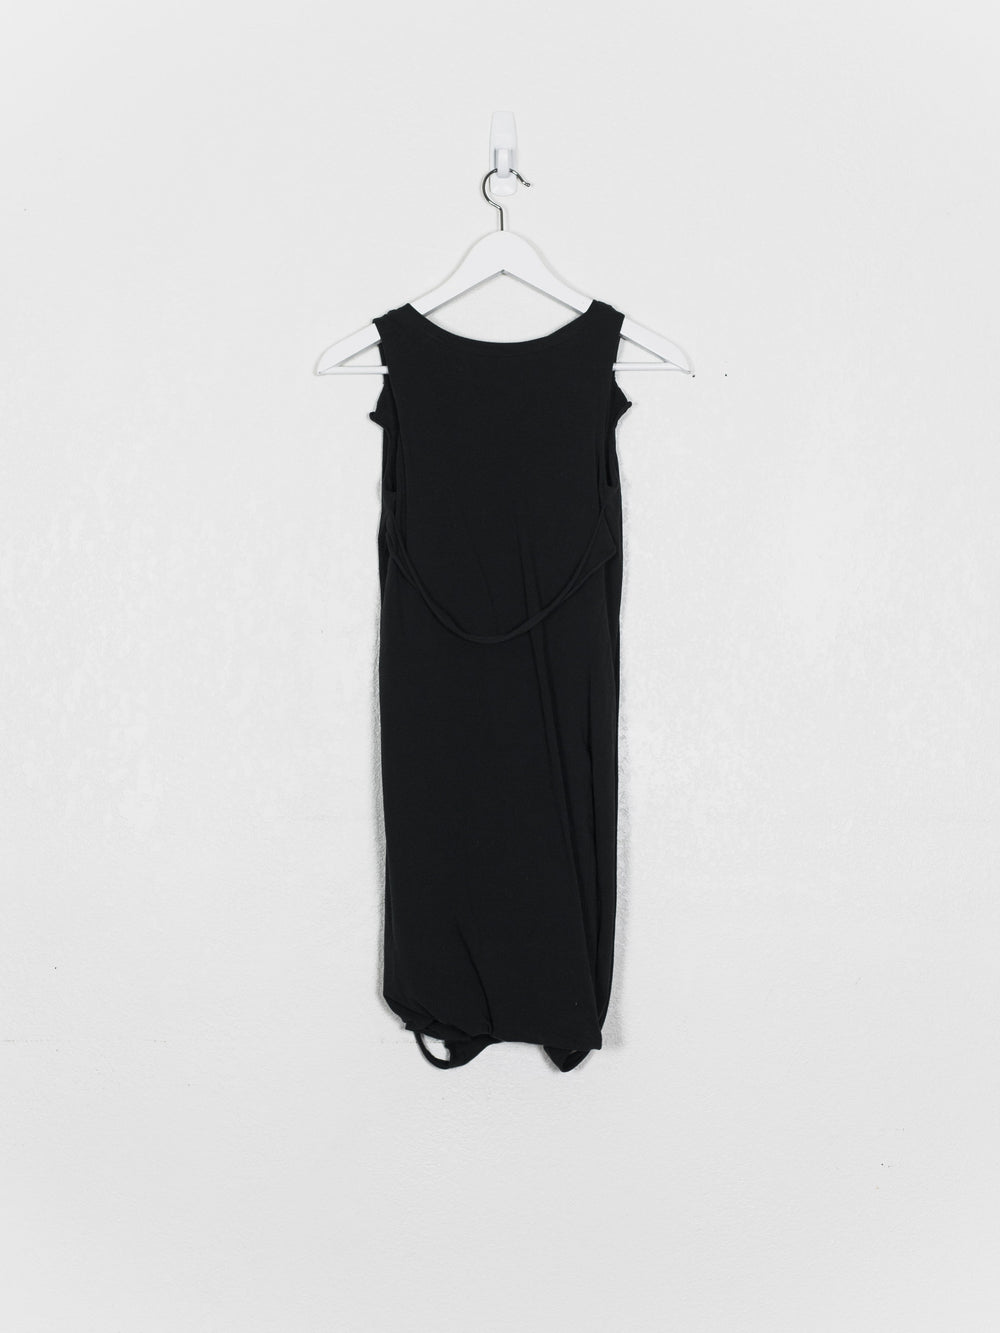 Helmut Lang SS04 Dragonfly Raw Strap Dress